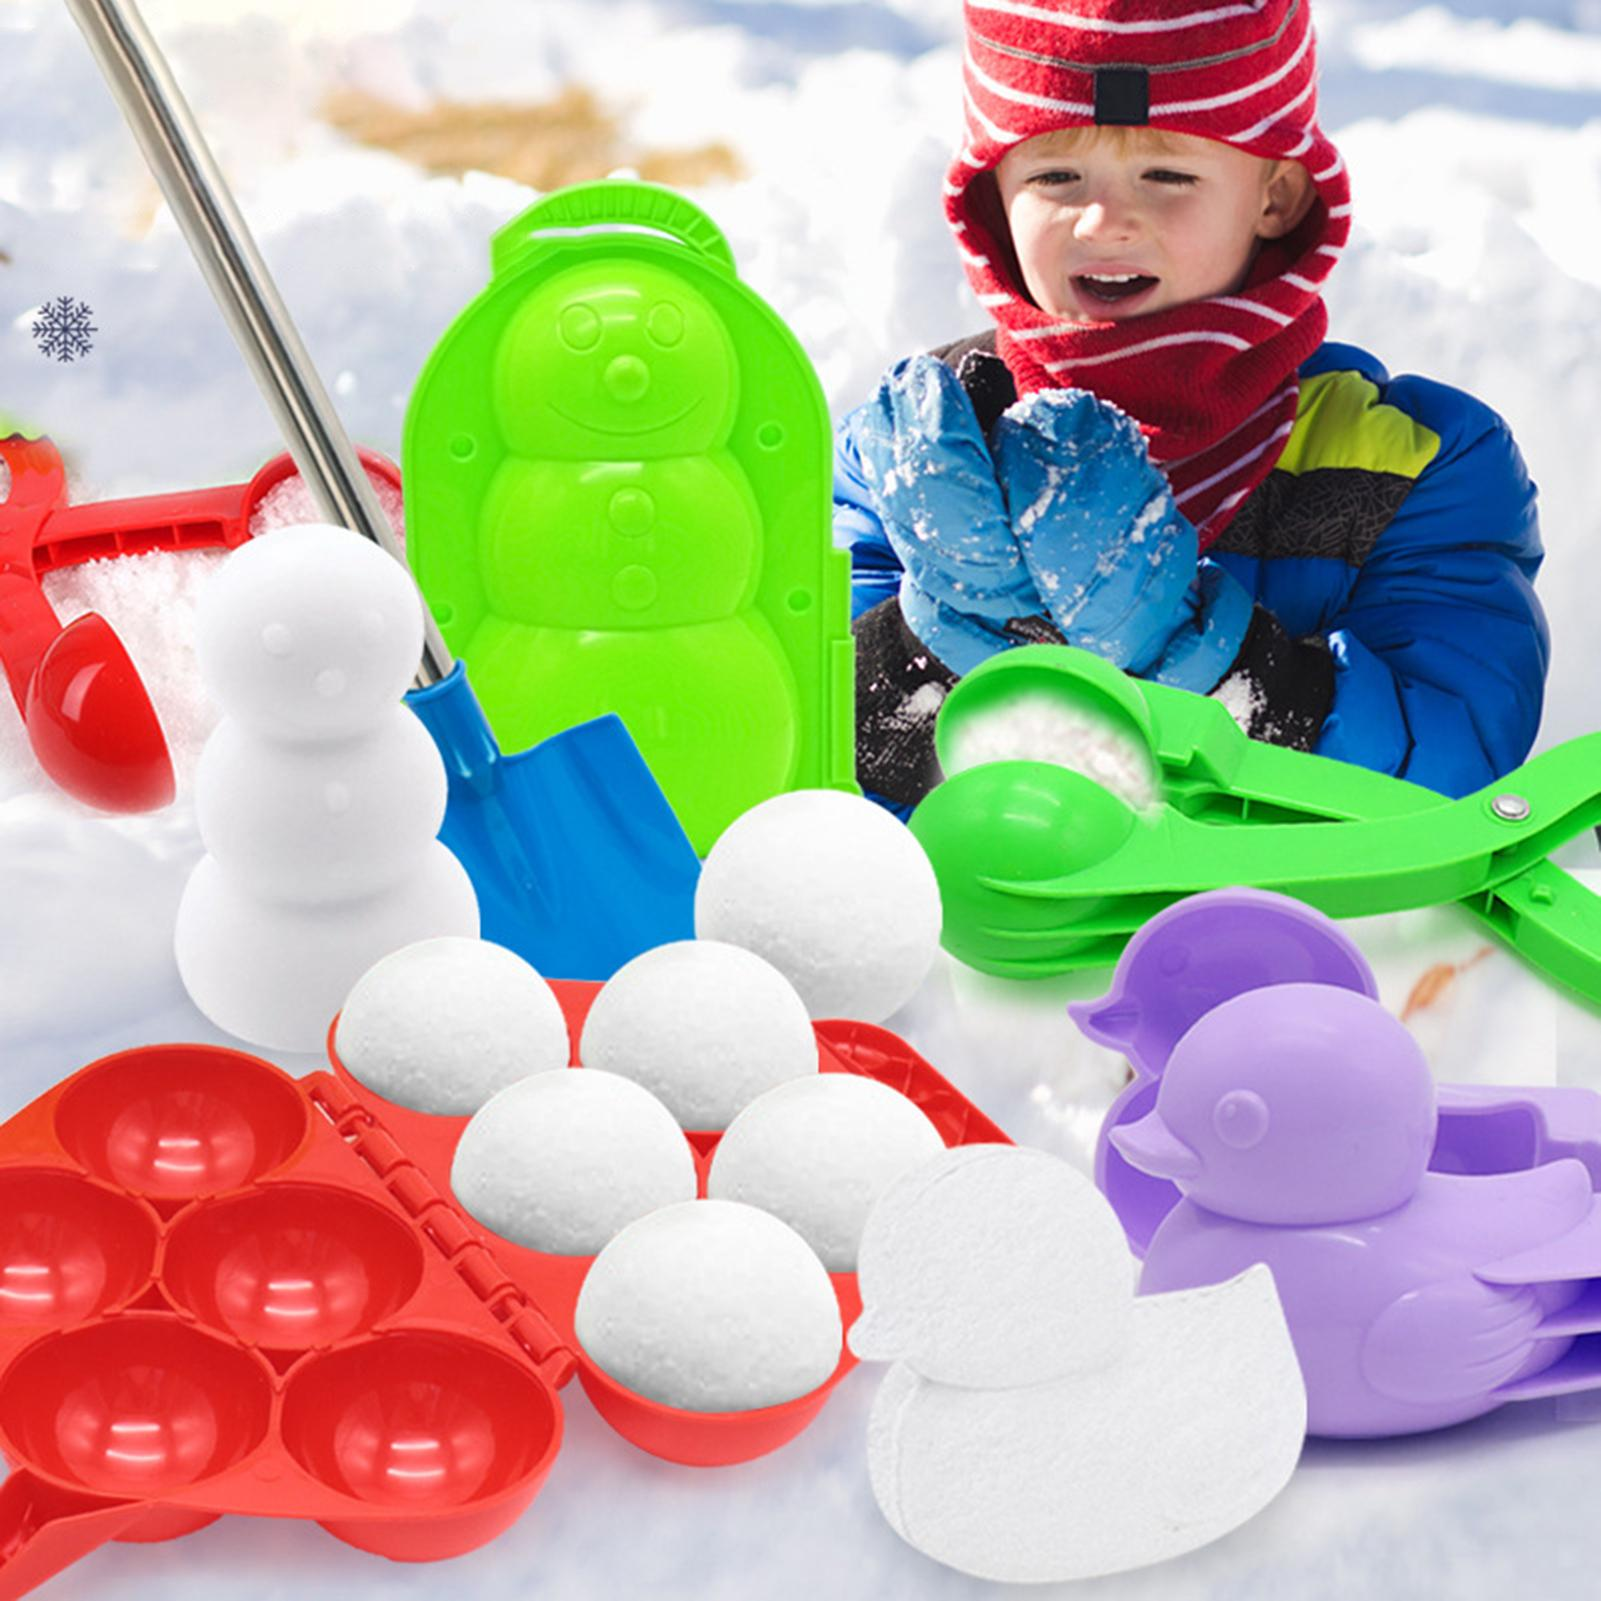 Winter Outdoor Sports Plastic Snowball Clip Maker Mold Tool Snow Sand Ball Mold Plastic Clamp Outdoor Fun & Sports Kids Toy